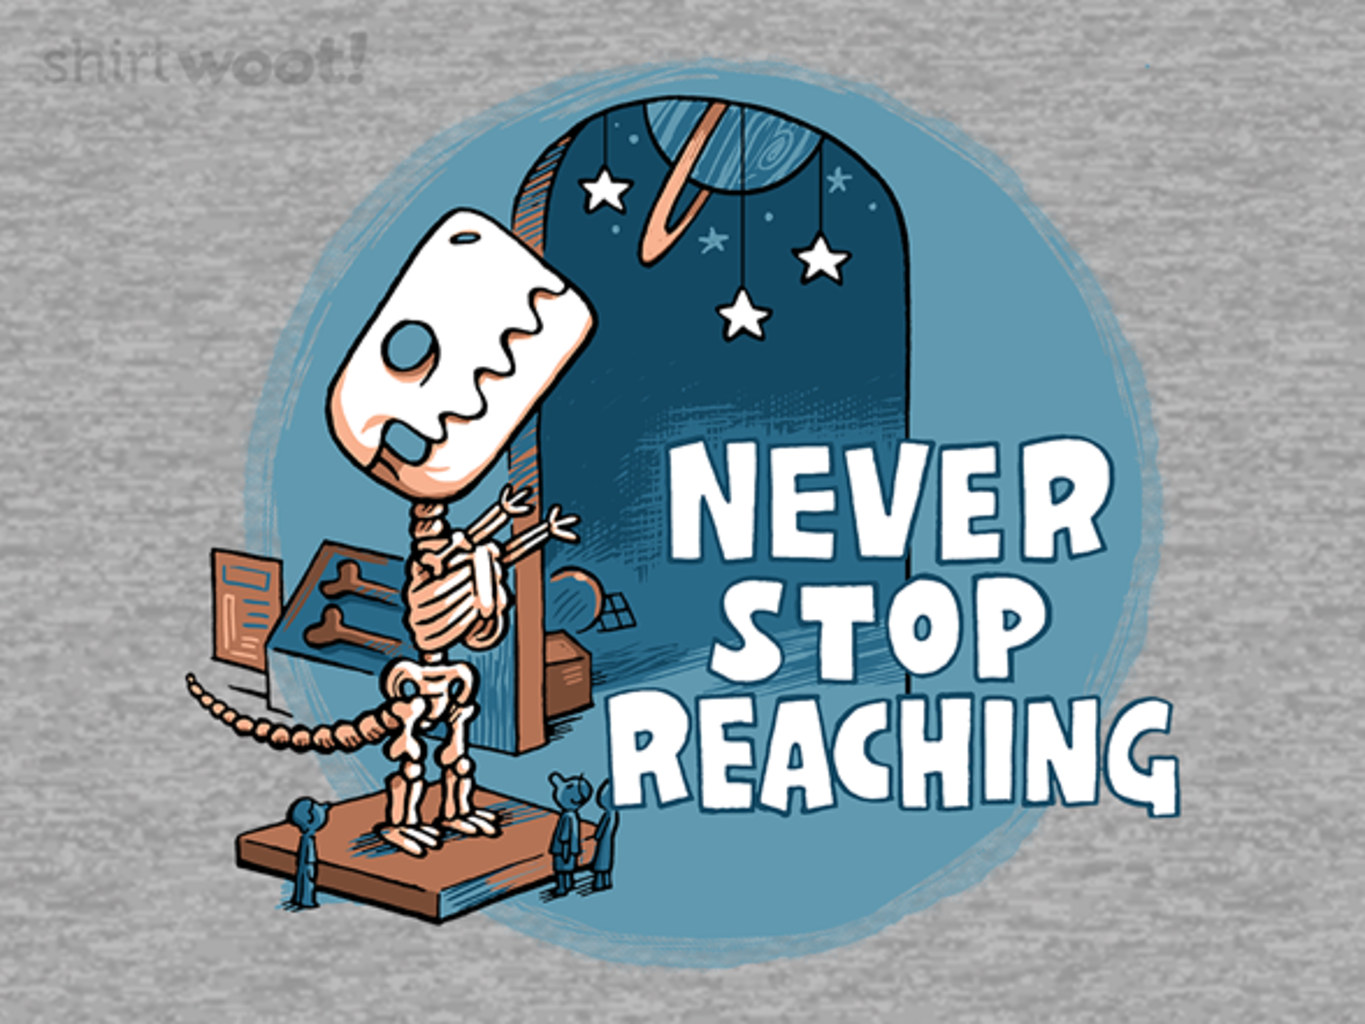 Woot!: Never Stop Reaching